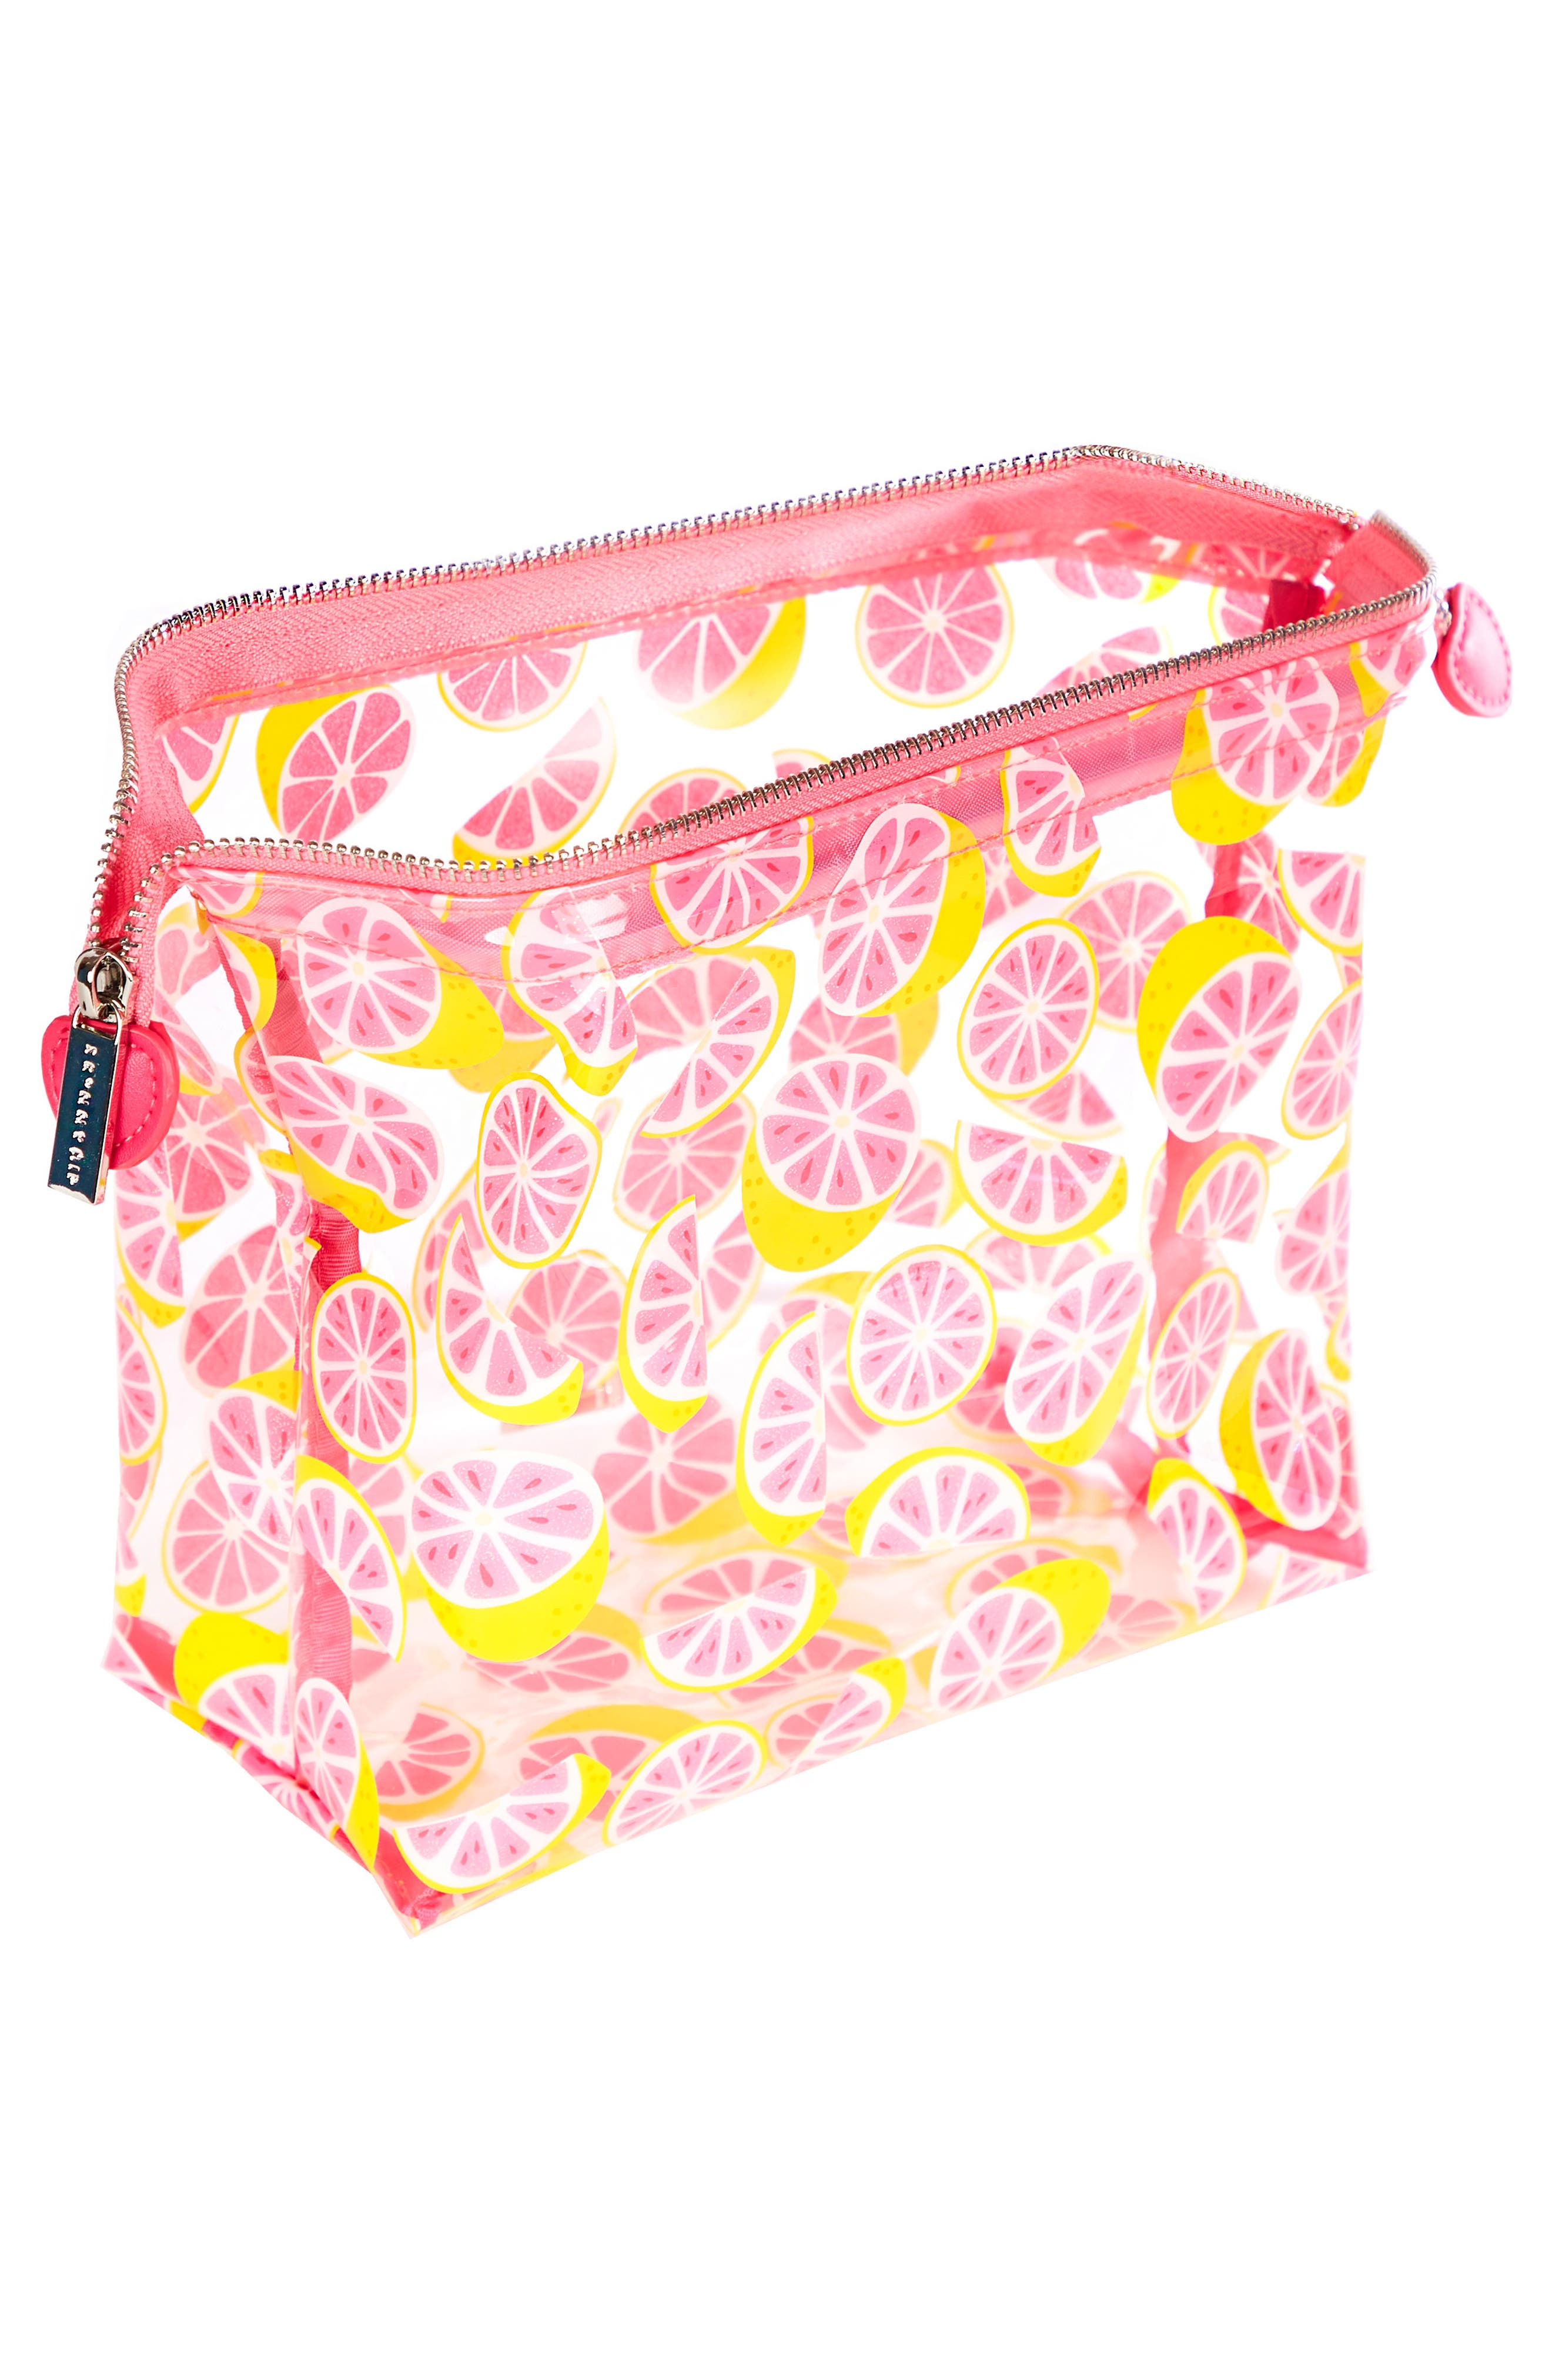 Skinny Dip Glitter Grapefruit Cosmetics Case,                             Alternate thumbnail 2, color,                             No Color